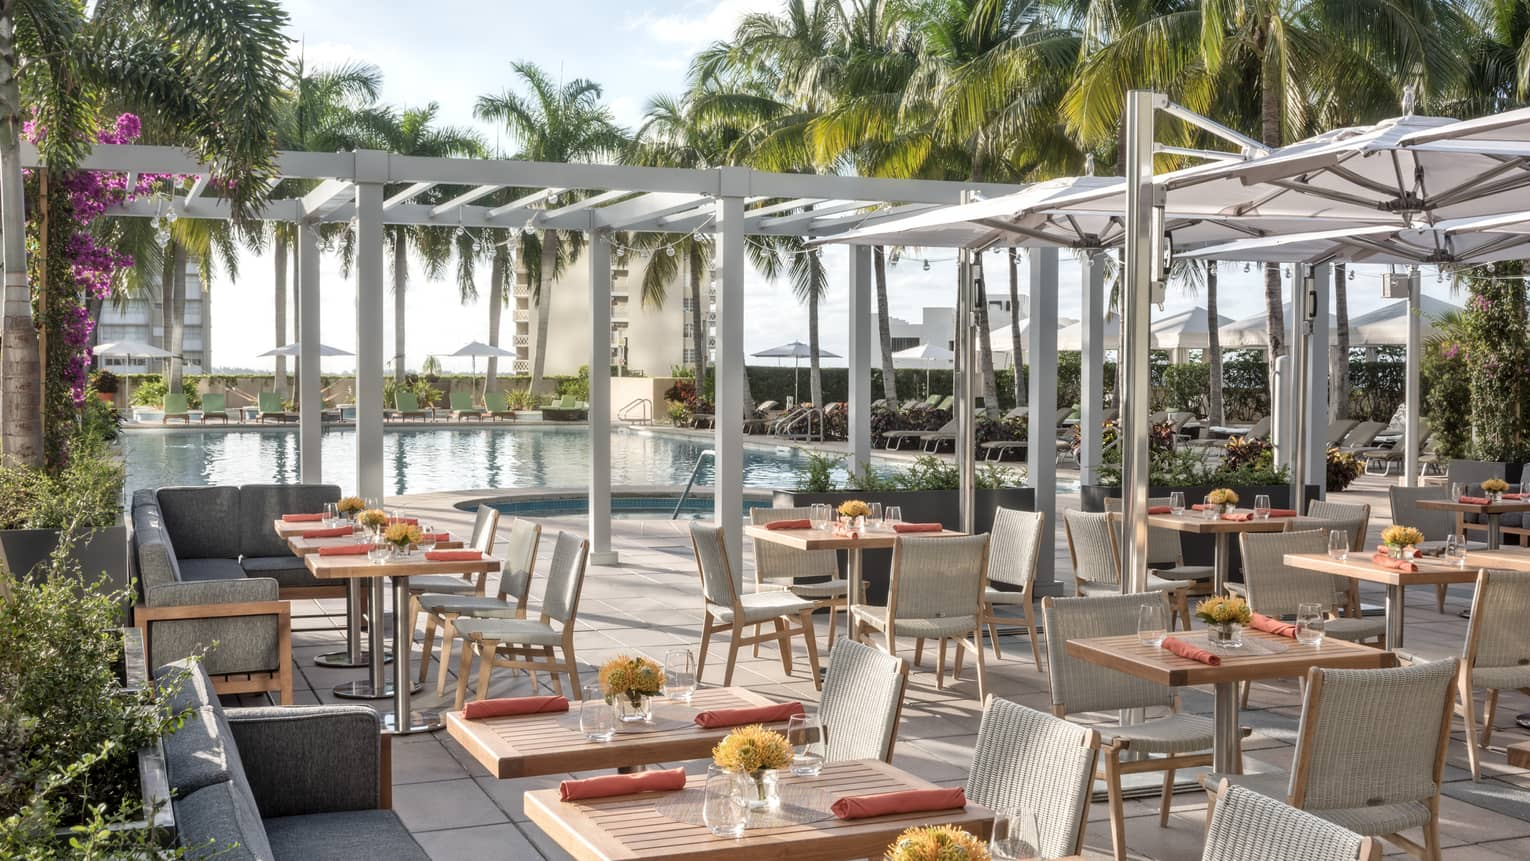 Miami Restaurats Fine Dining Four Seasons Hotel Miami